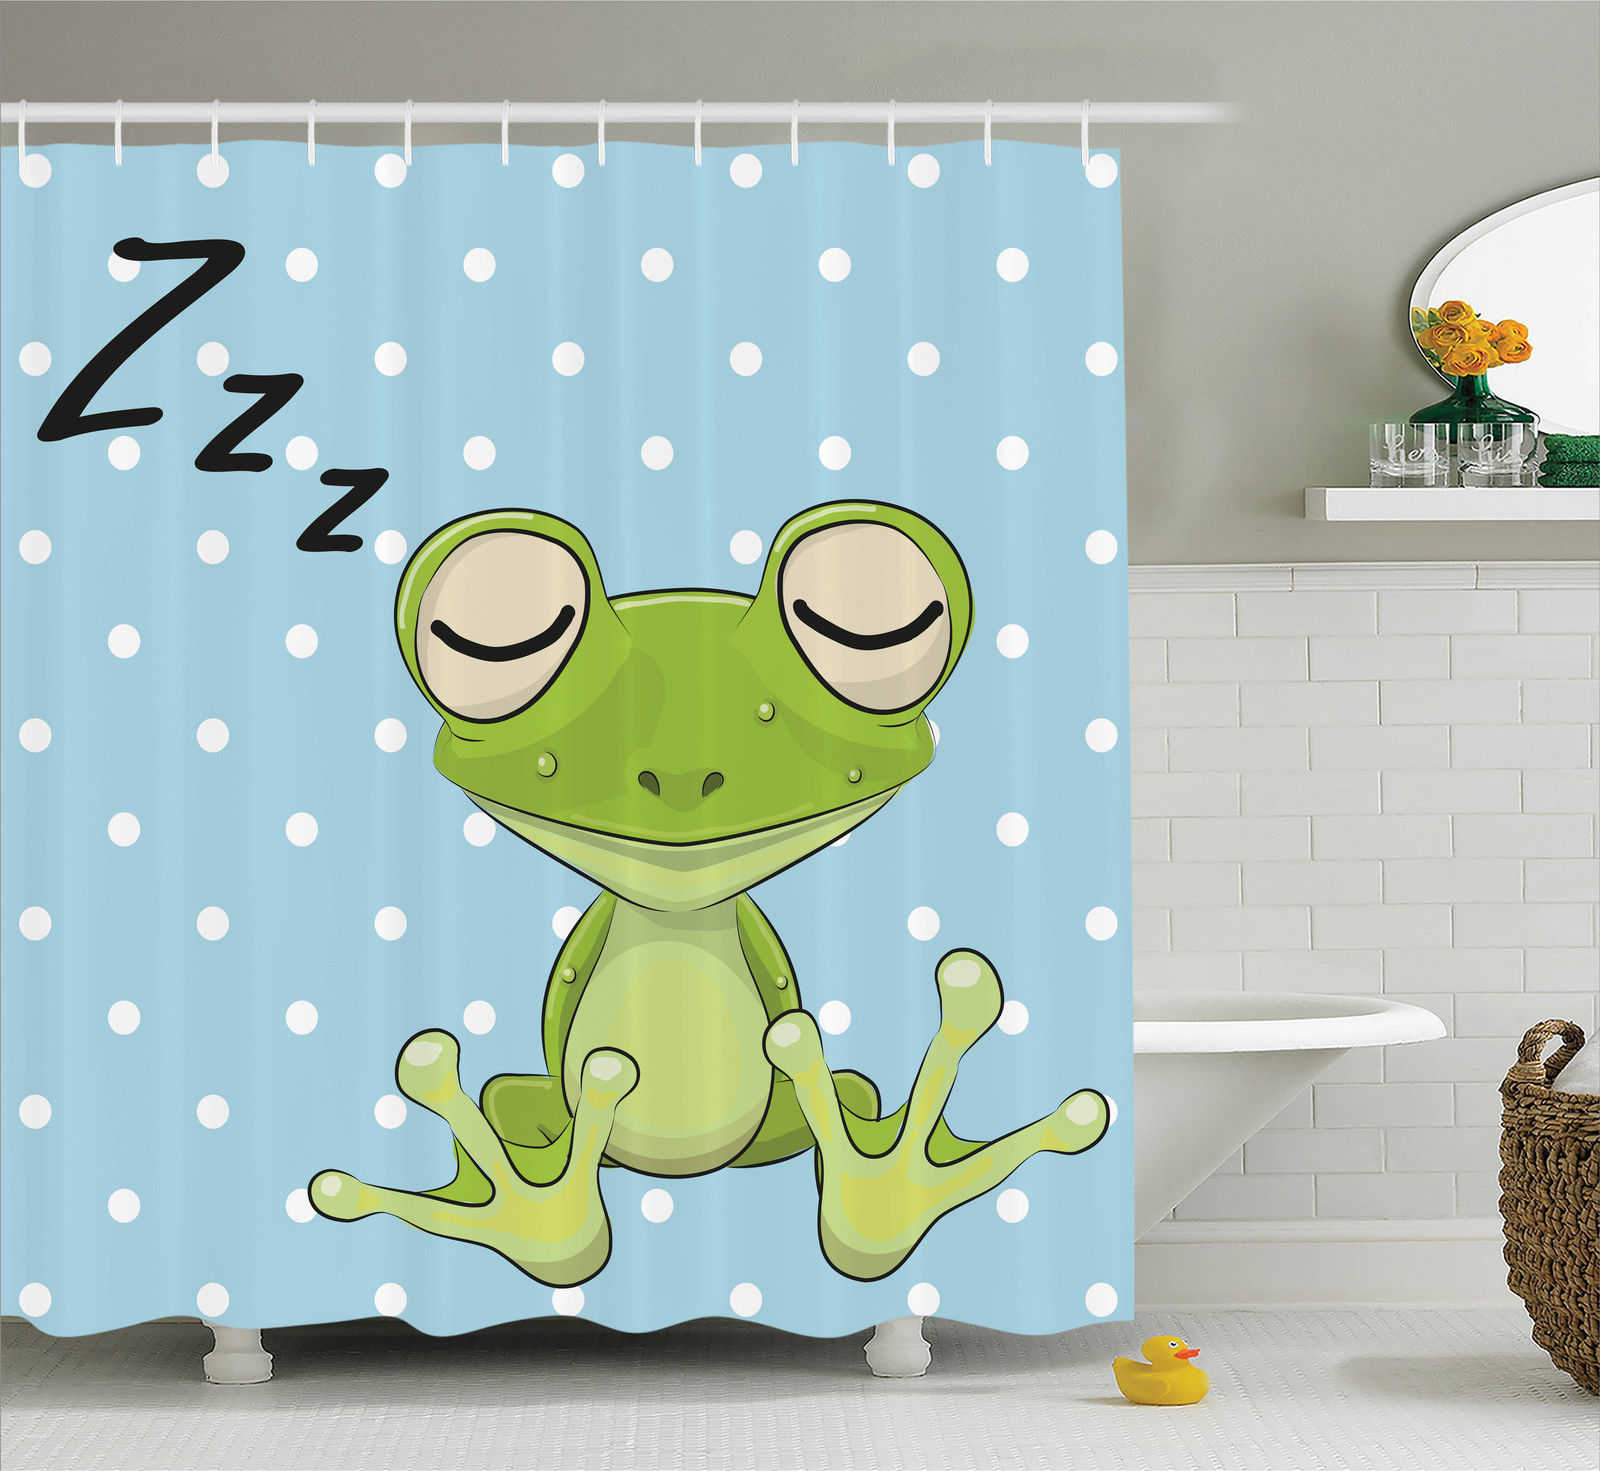 Cartoon Decor  Sleeping Prince Frog In A Cap Polka Dots Background Cute Animal World Kids Home Decor, Bathroom Accessories, 69W X 84L Inches Extra Long, By Ambesonne